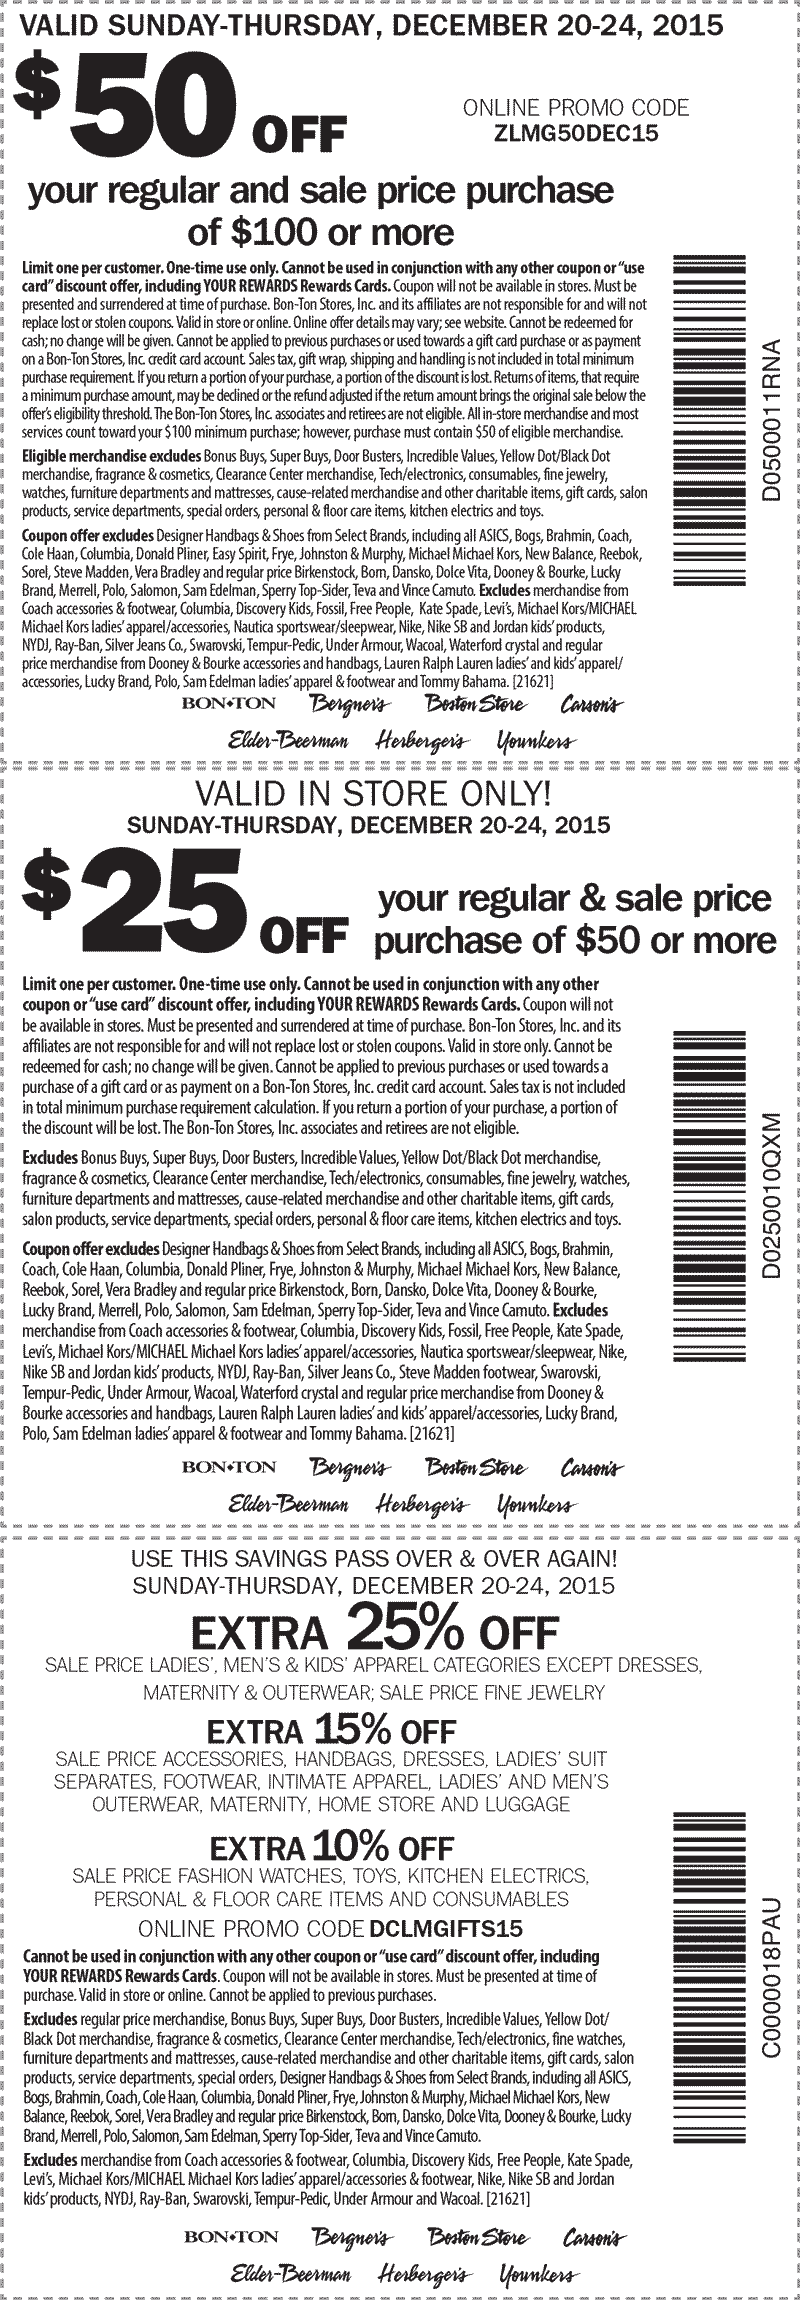 Carsons Coupon July 2017 $50 off $100 & more at Carsons, Bon Ton & sister stores, or online via promo code ZLMG50DEC15